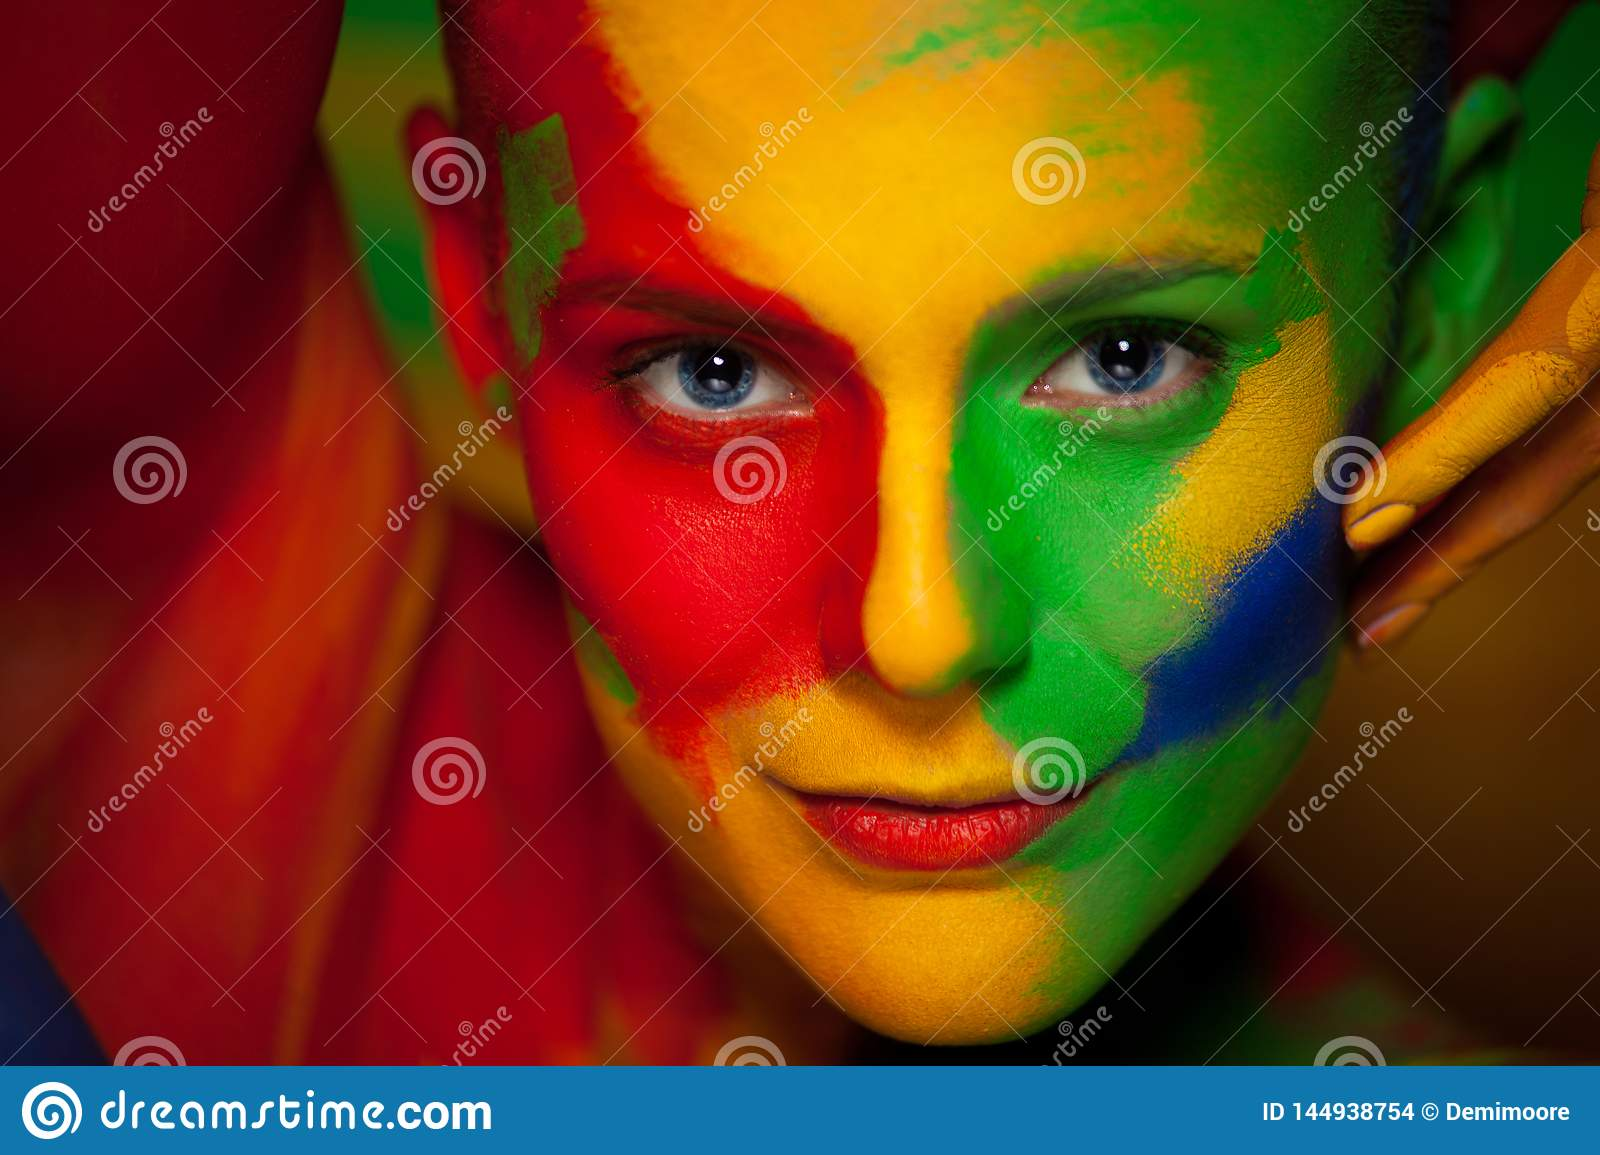 Fashion Portrait Of Beautiful Girl With Bright Colorful